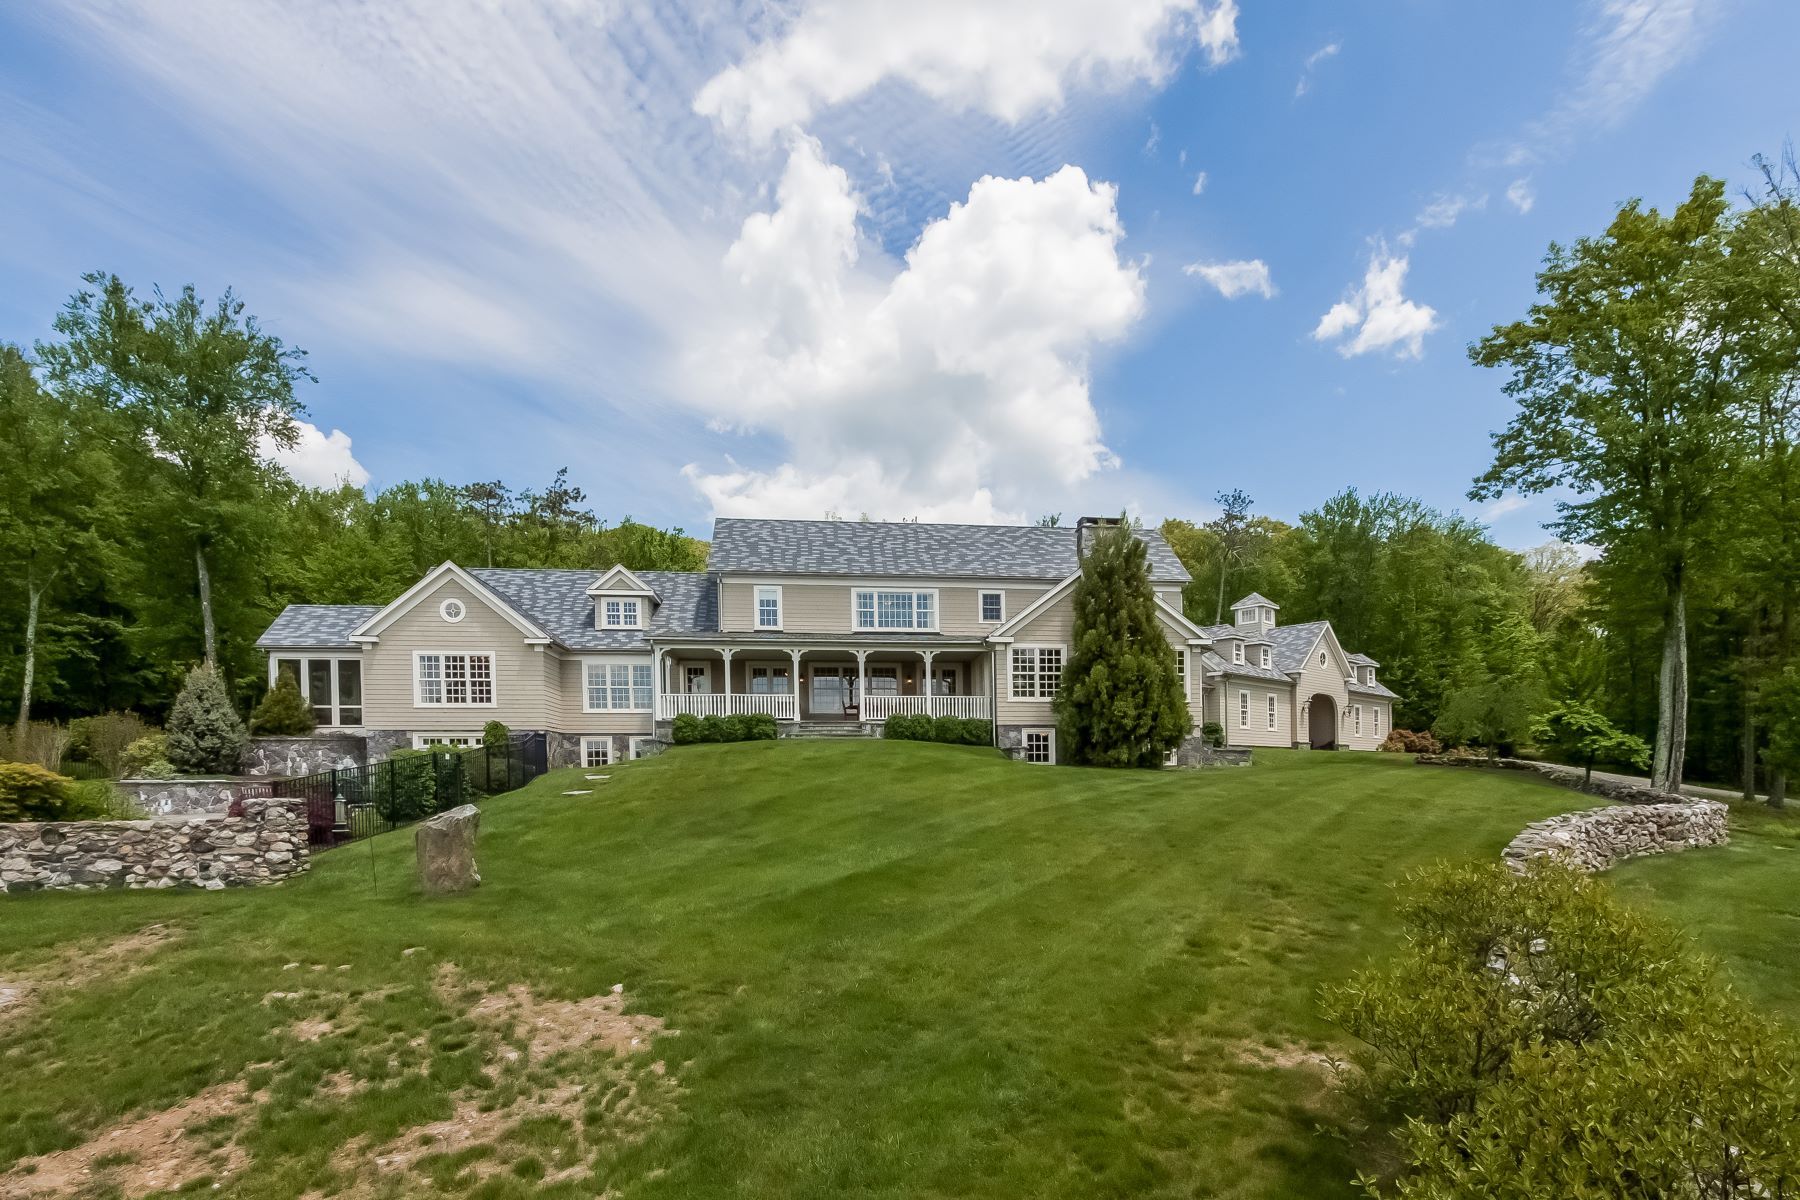 Single Family Home for Sale at Bella Vista 24 Ranney Hill Road Roxbury, Connecticut, 06783 United States